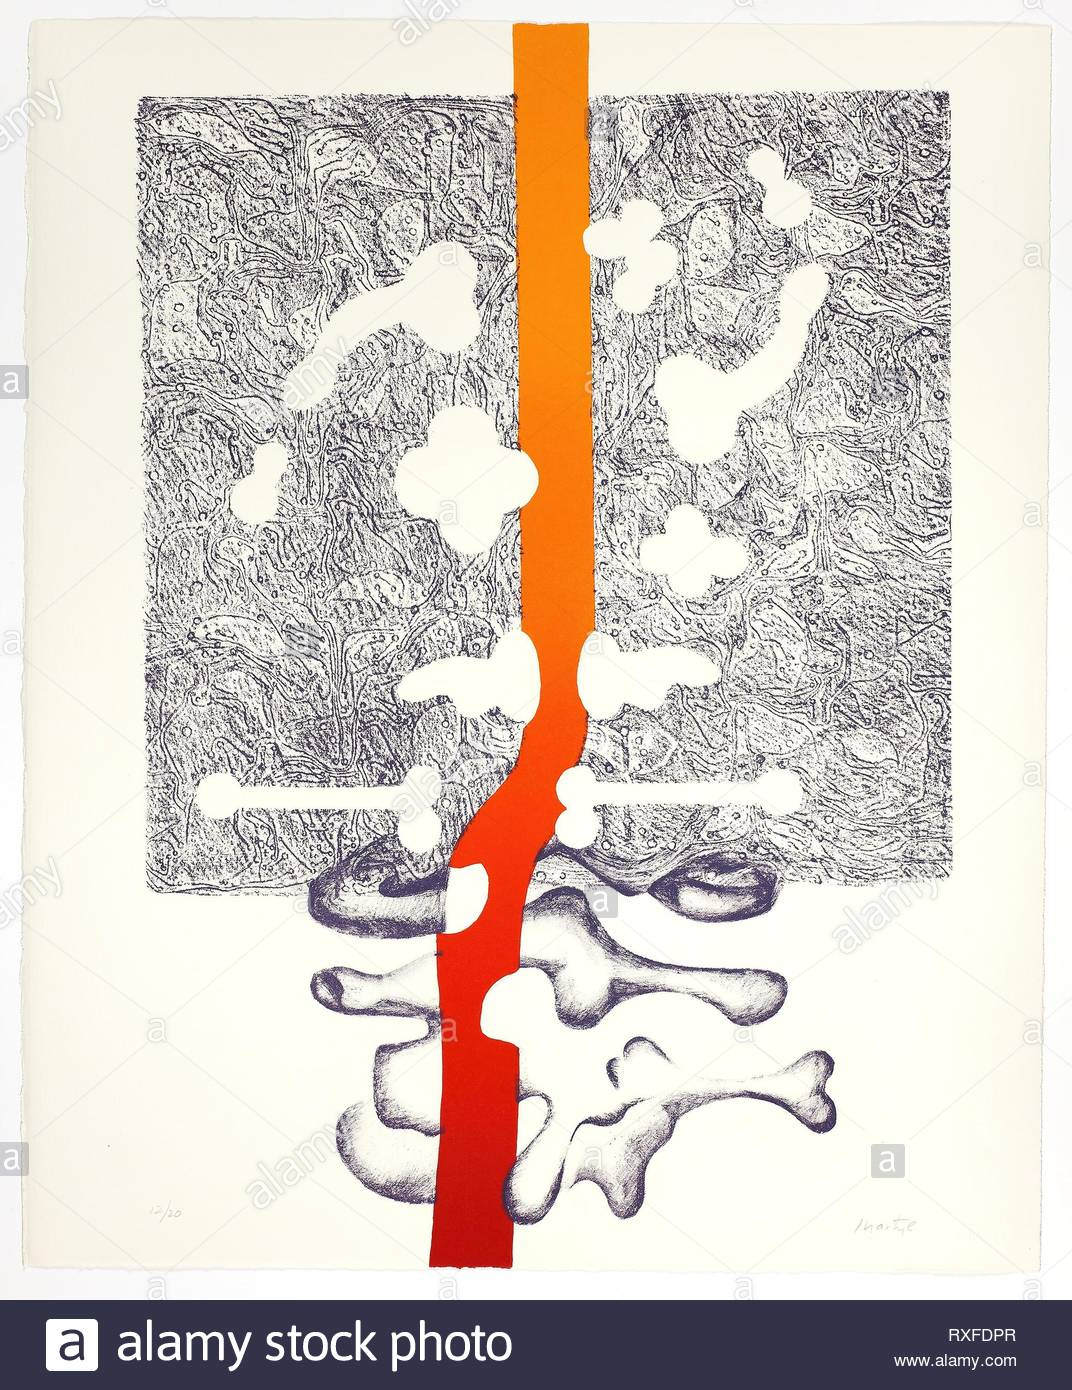 Plate One, from Synapse Suite. Martyl; American, 1918-2013. Date: 1974. Dimensions: 560 x 455 mm. Color lithograph on paper. Origin: United States. Museum: The Chicago Art Institute. Author: Suzanne Martyl Langsdorf. - Stock Image